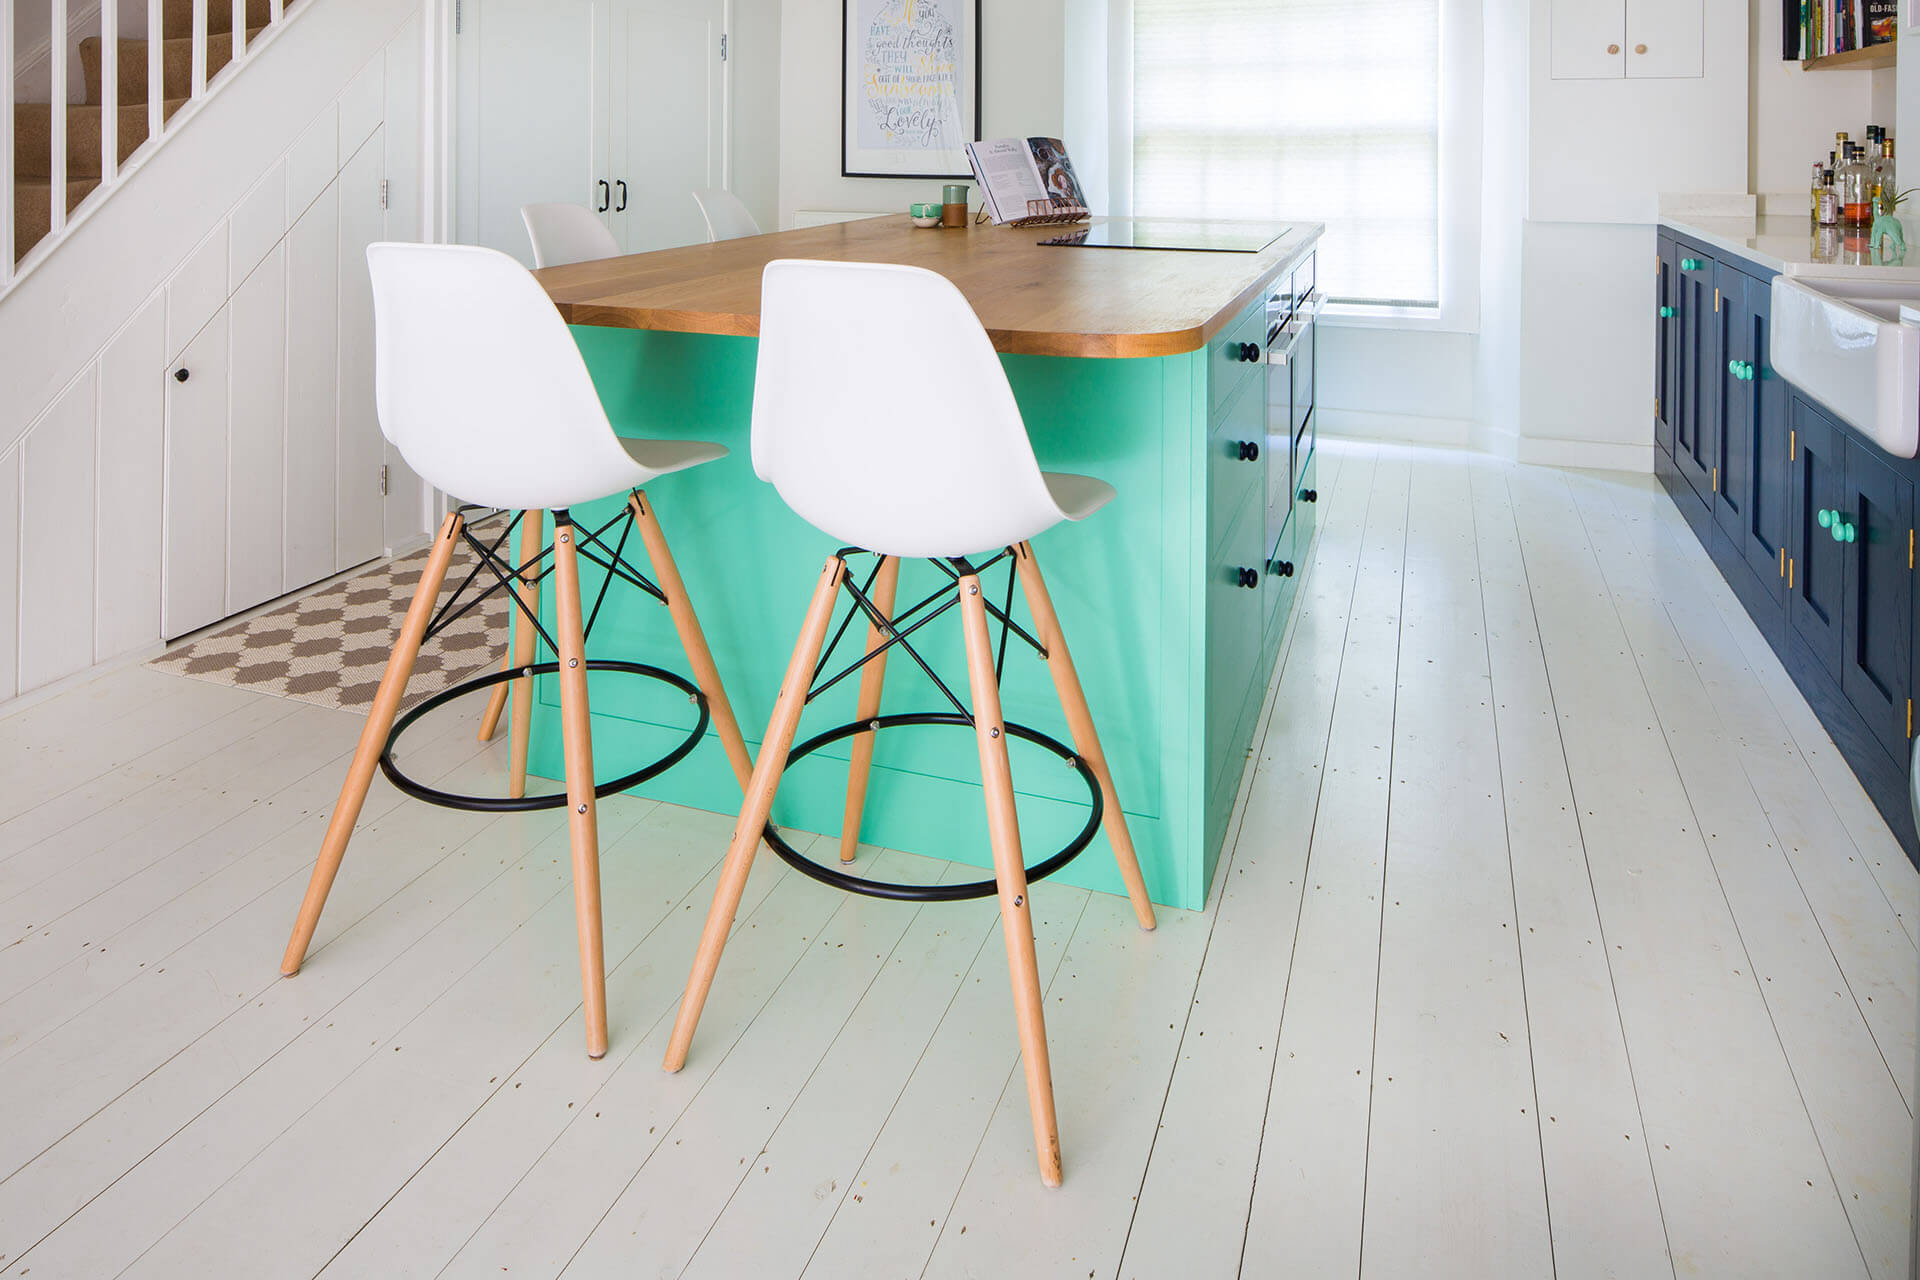 Colourful fun Shaker kitchen with bar stools and Oak worktop